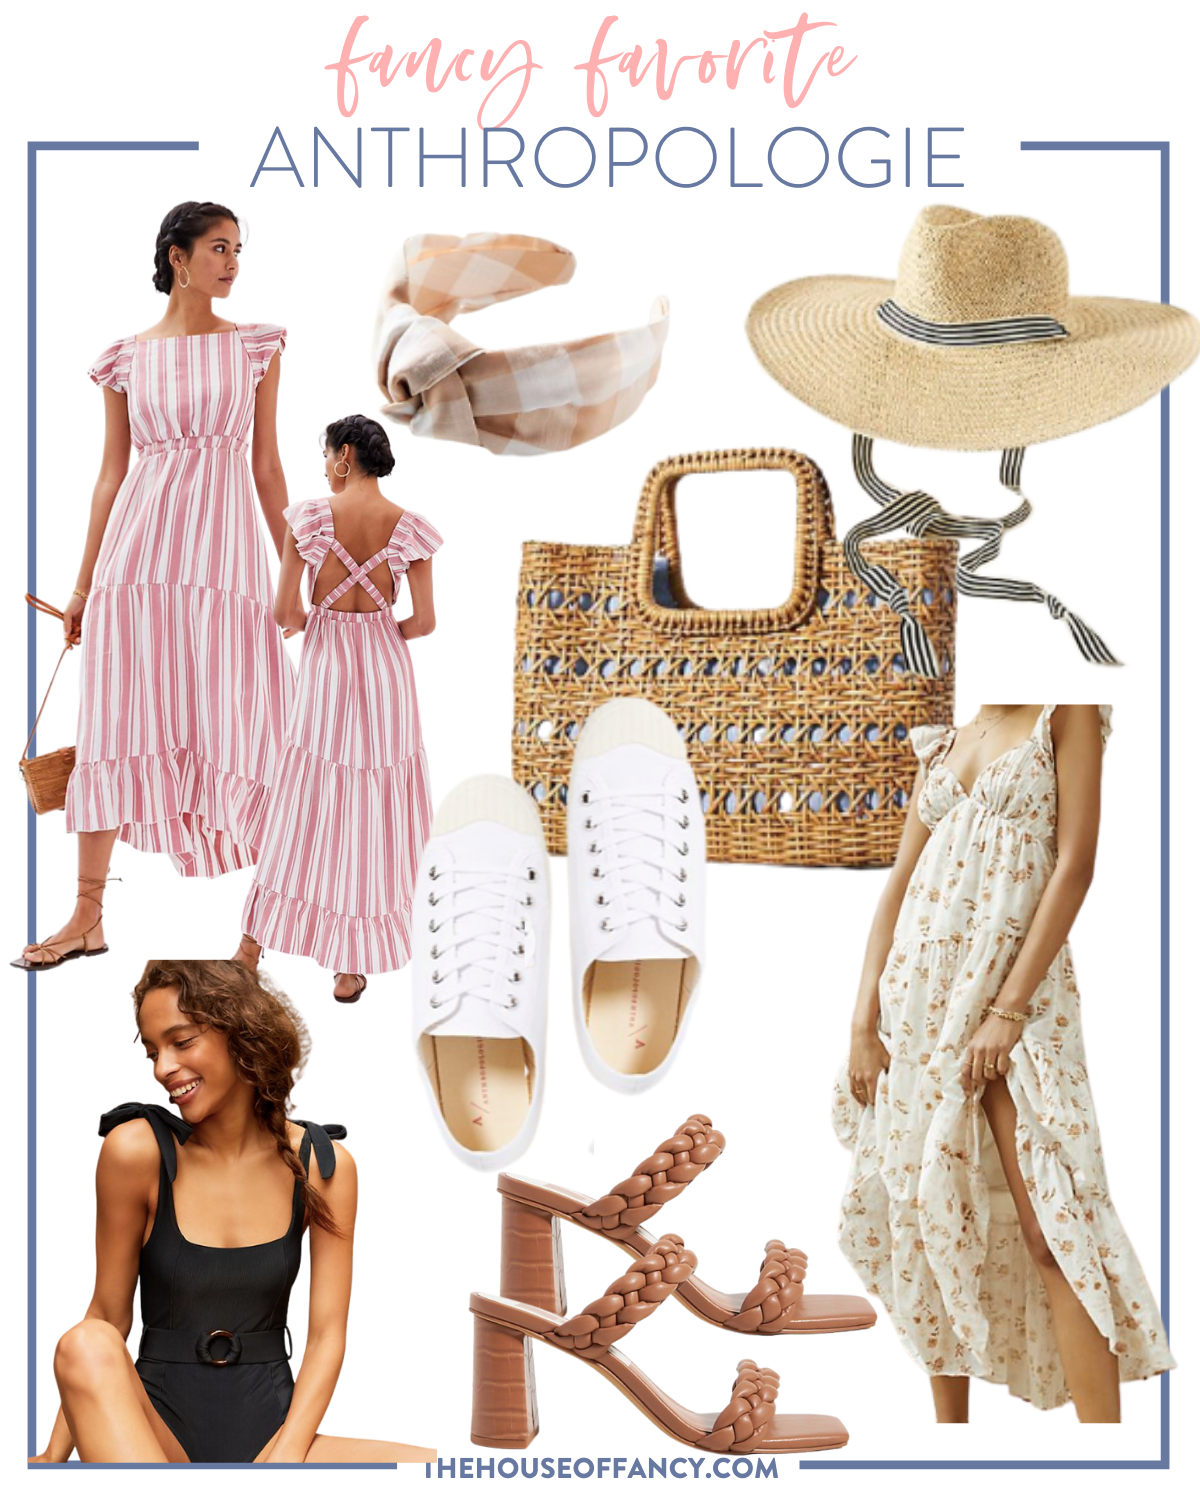 Summer Dress by popular Houston fashion blog, The House of Fancy: collage image of a pink and white stripe flutter sleeve dress, buffalo plaid knot headband, straw sunhat, wicker hand tote, white sneakers, black one piece swim piece, braided strap block heel sandals, and floral print tiered maxi dress.